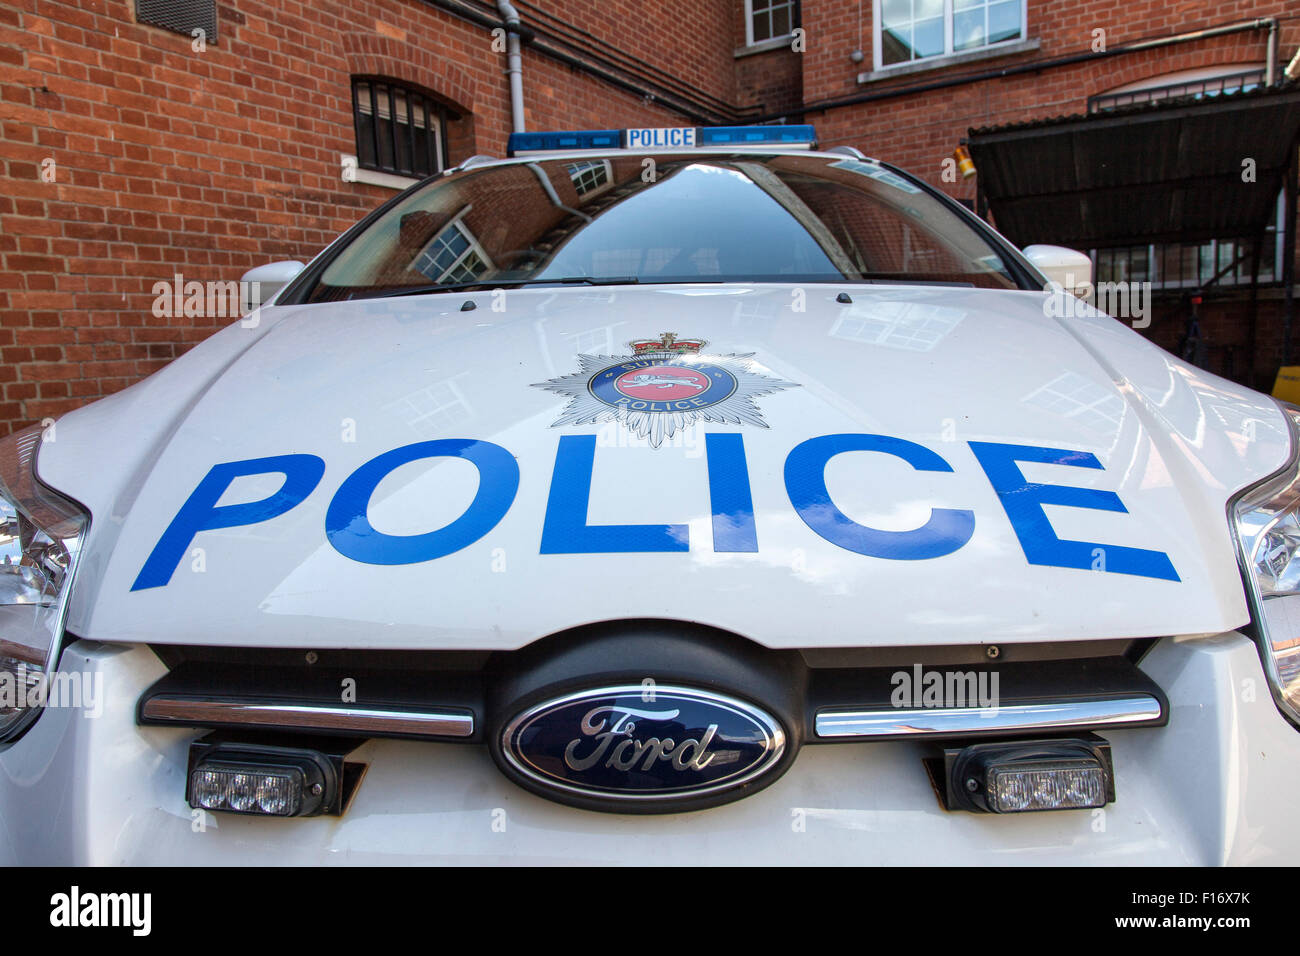 A close up of a Police car in England Stock Photo